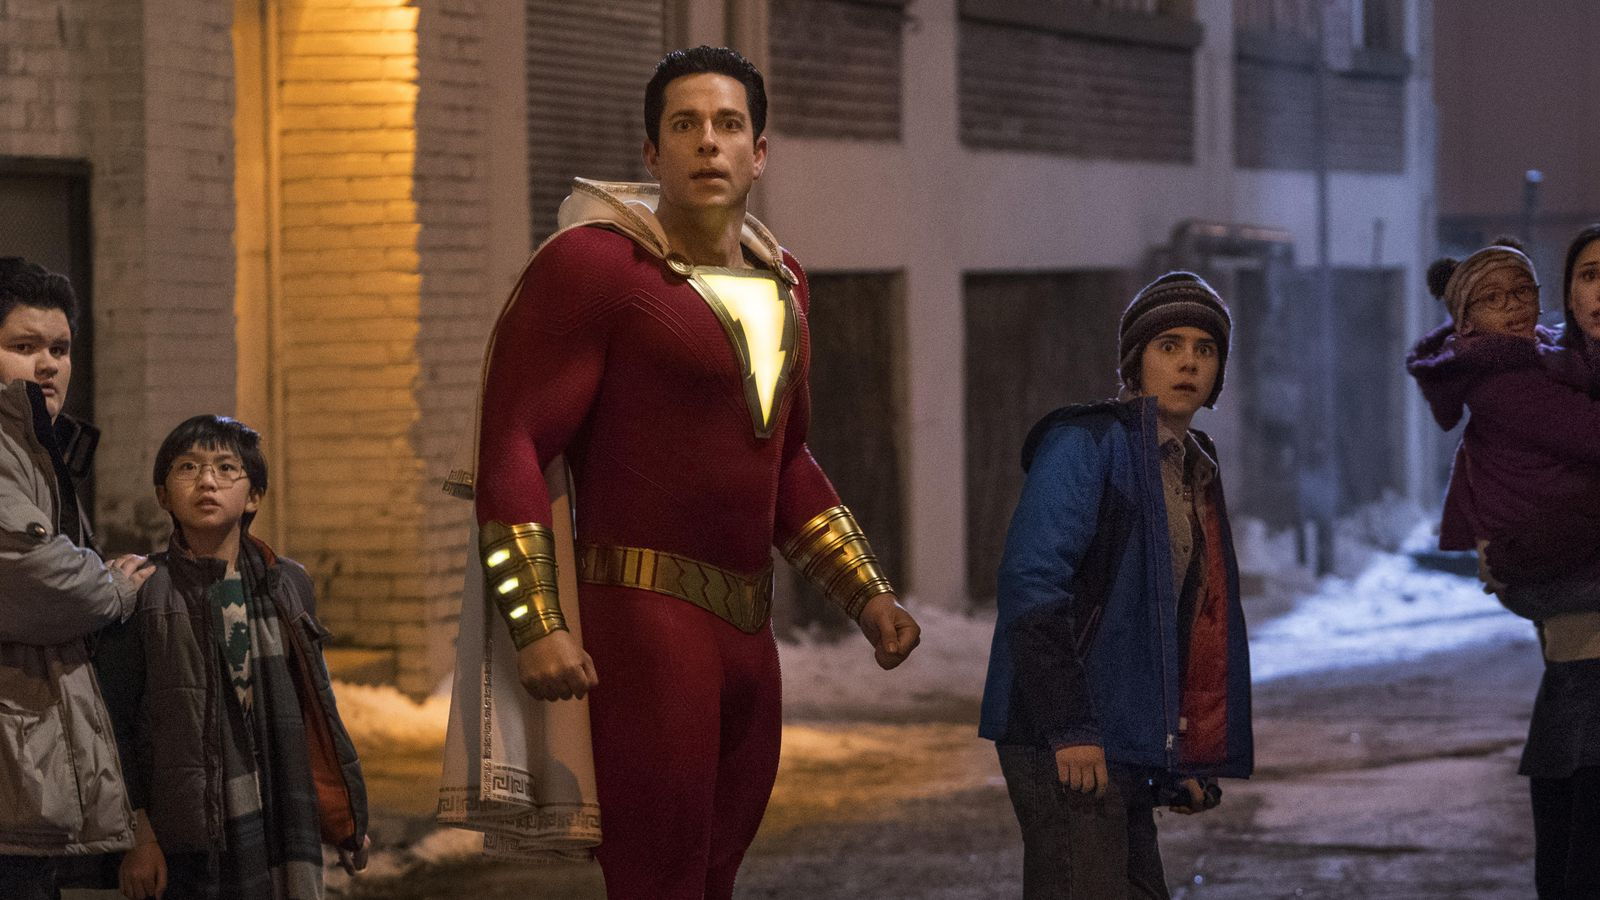 (l to r) Shazam (Zachary Levi) and his friend Freddy Freeman (Jack Dylan Grazer) in Shazam! (2019)